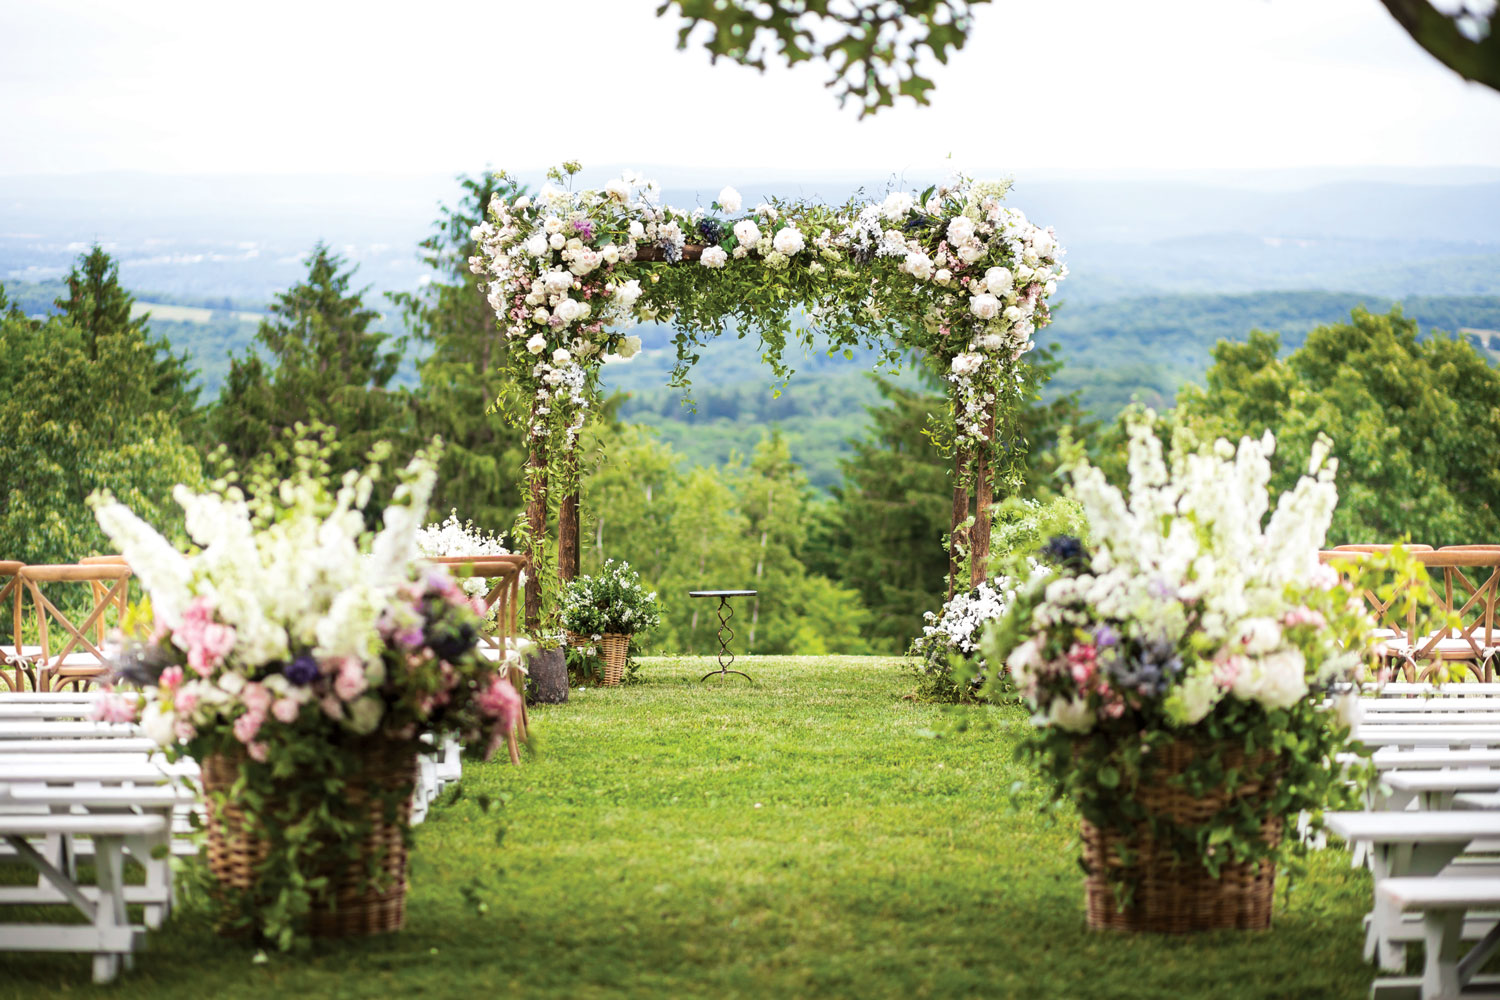 Inside Weddings magazine summer 2019 issue preview outdoor wedding ceremony grassy pretty view countryside